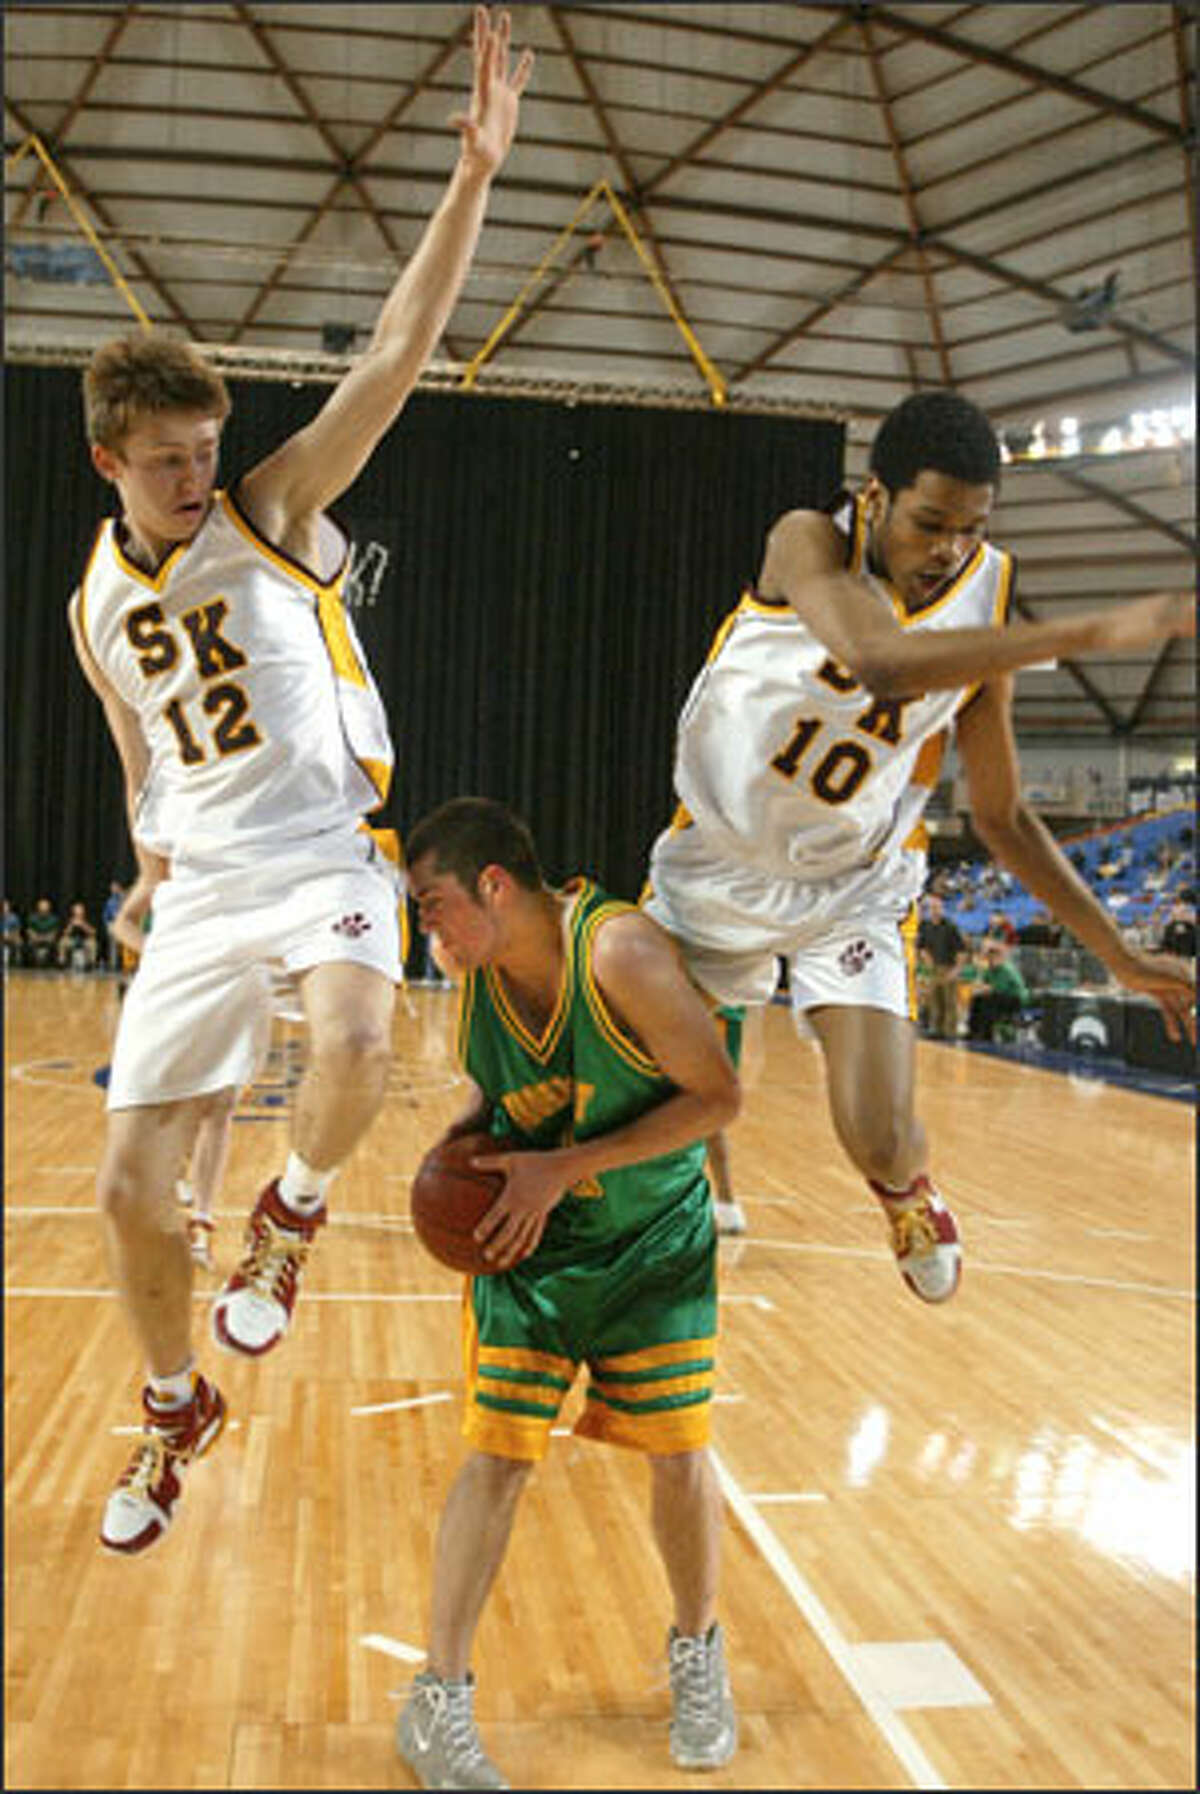 Roosevelt's David Grant ducks between high-flying South Kitsap defenders Conner Gehring and L.P. Neloms during the state high school basketball championships.